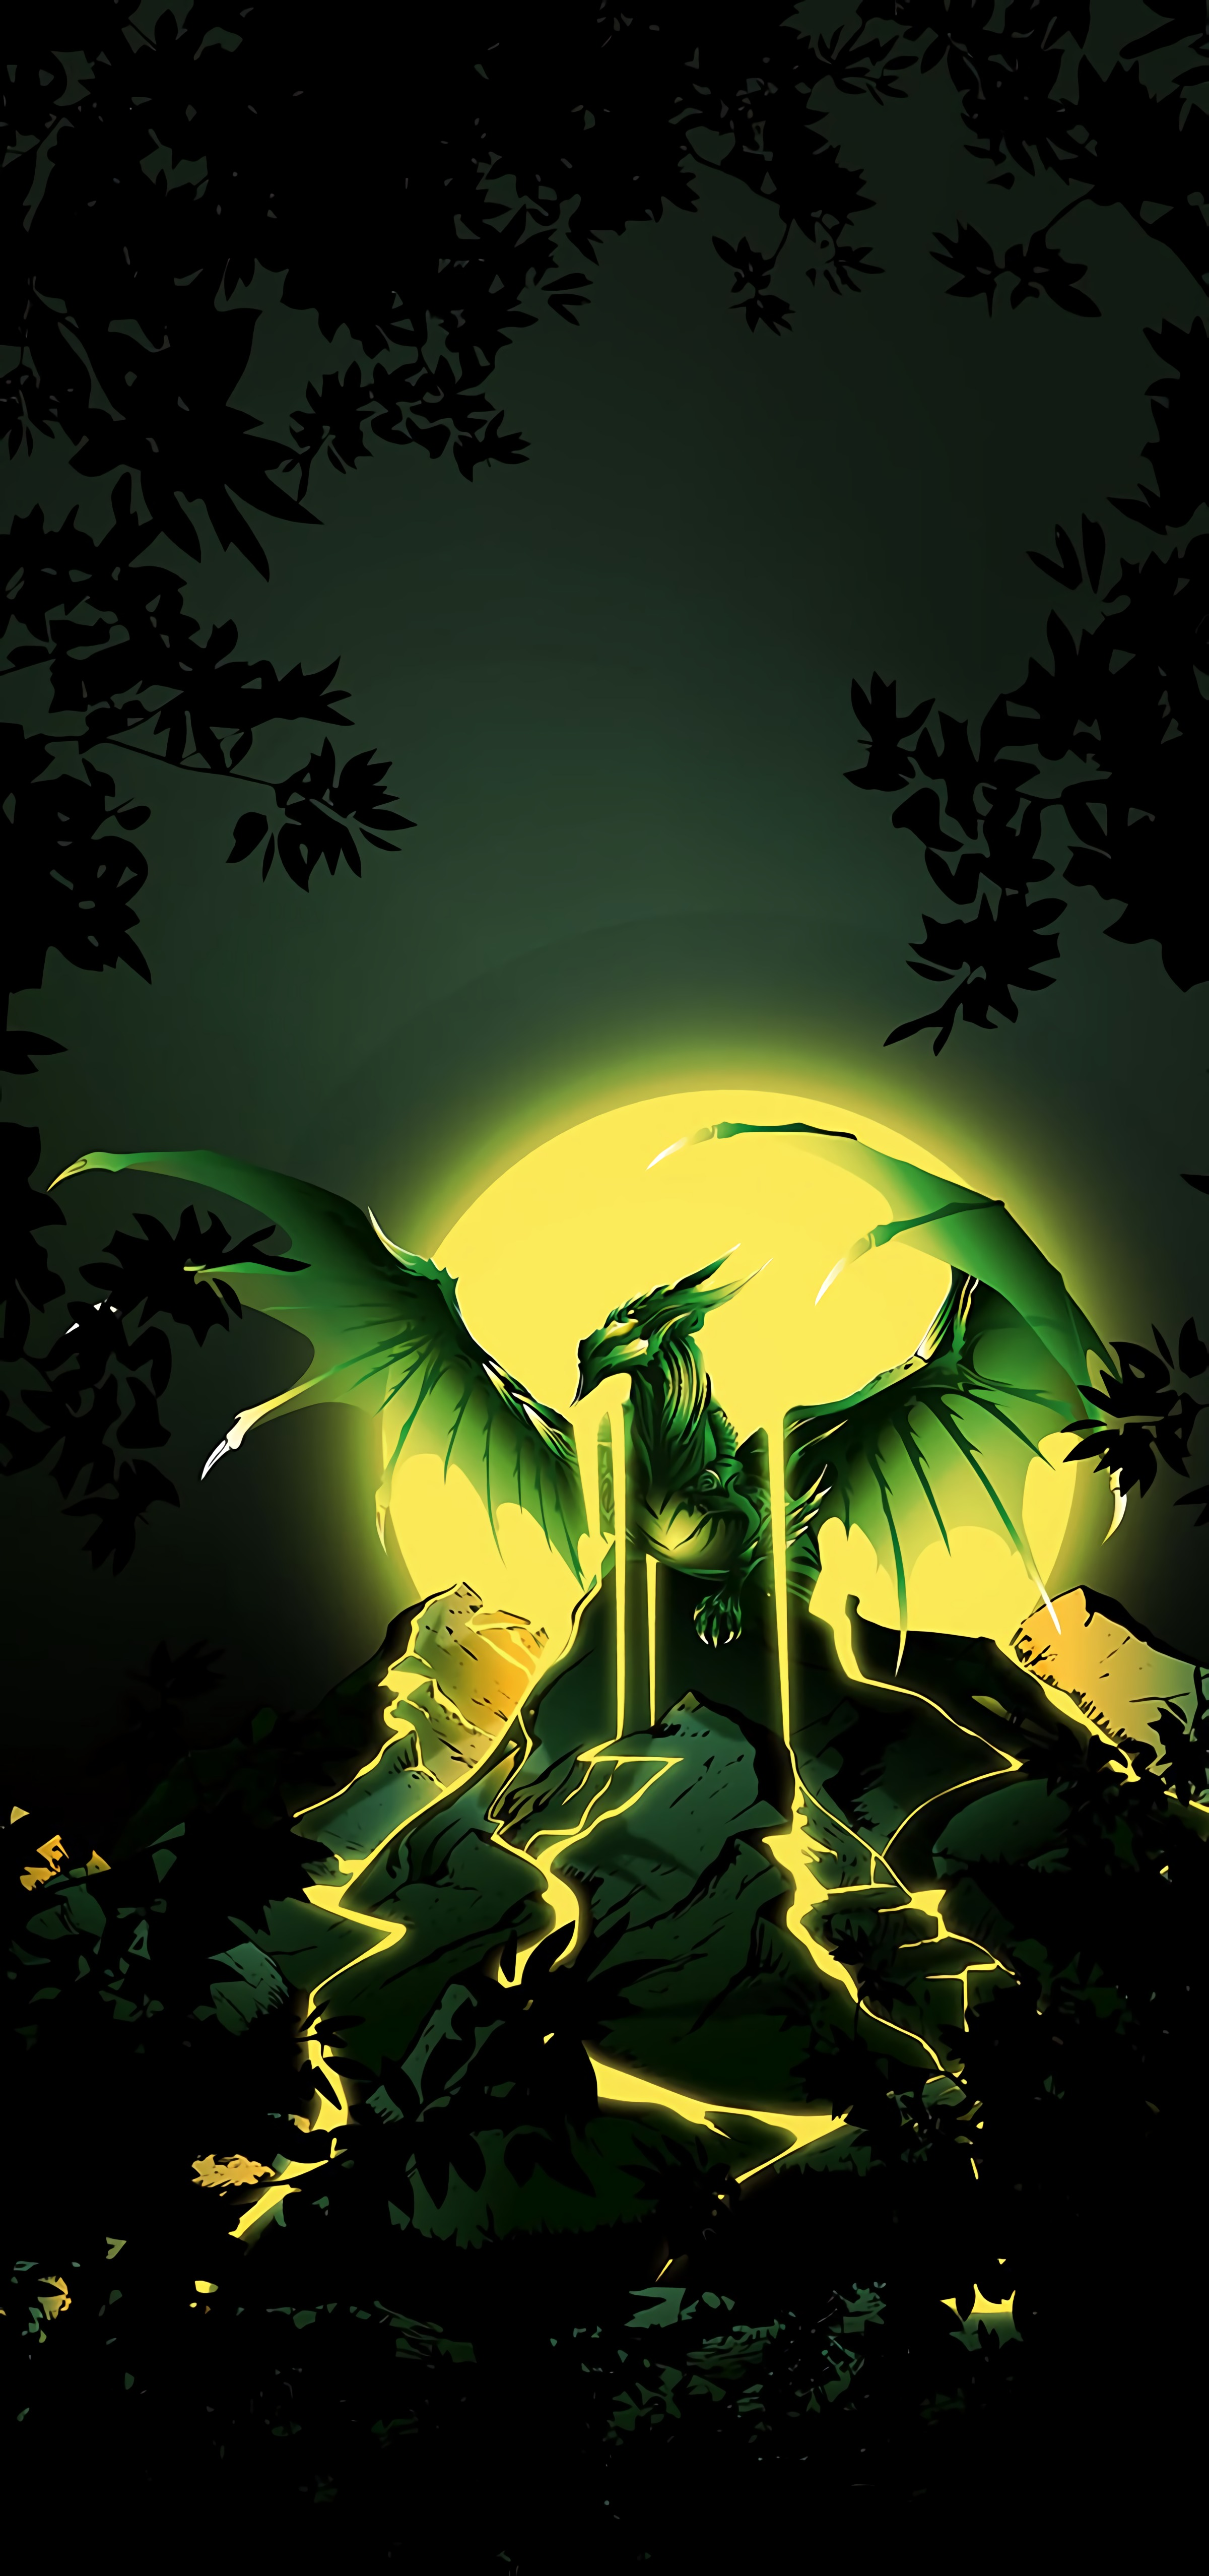 92535 download wallpaper Dragon, Wings, Moon, Art, Mountains screensavers and pictures for free